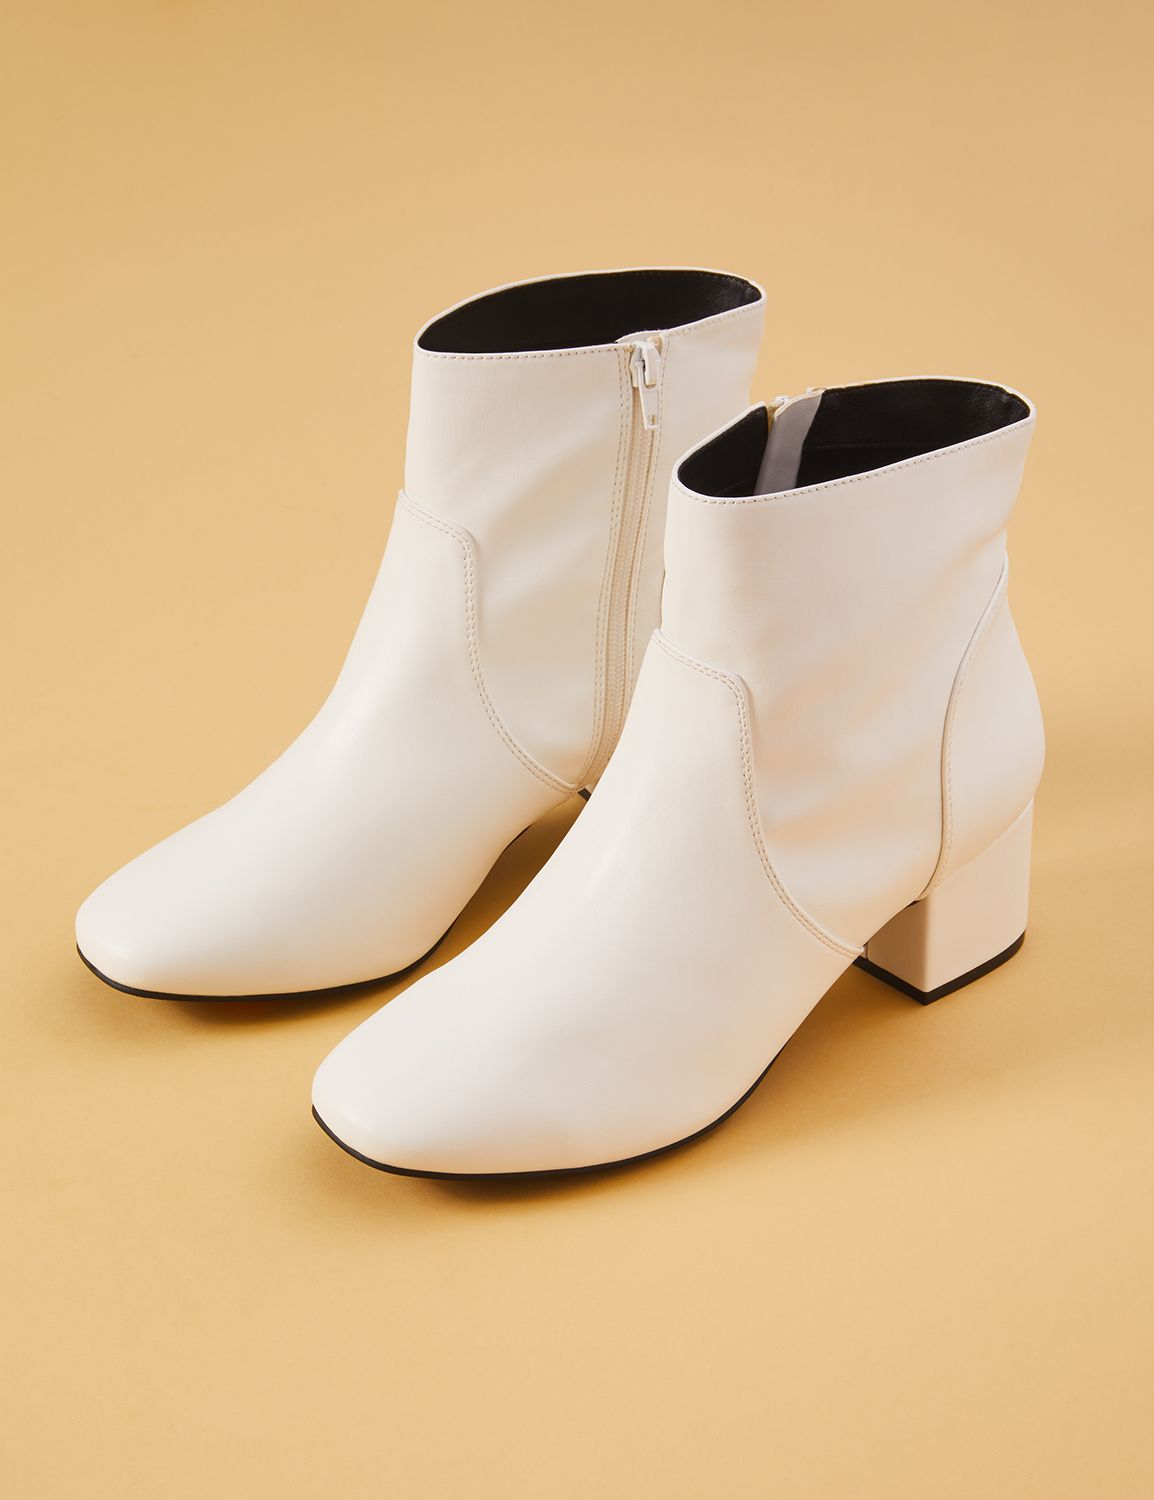 Vintage Boots, Granny Boots, Retro Boots Lane Bryant Womens White Faux Leather Ankle Boot 12W White $62.99 AT vintagedancer.com